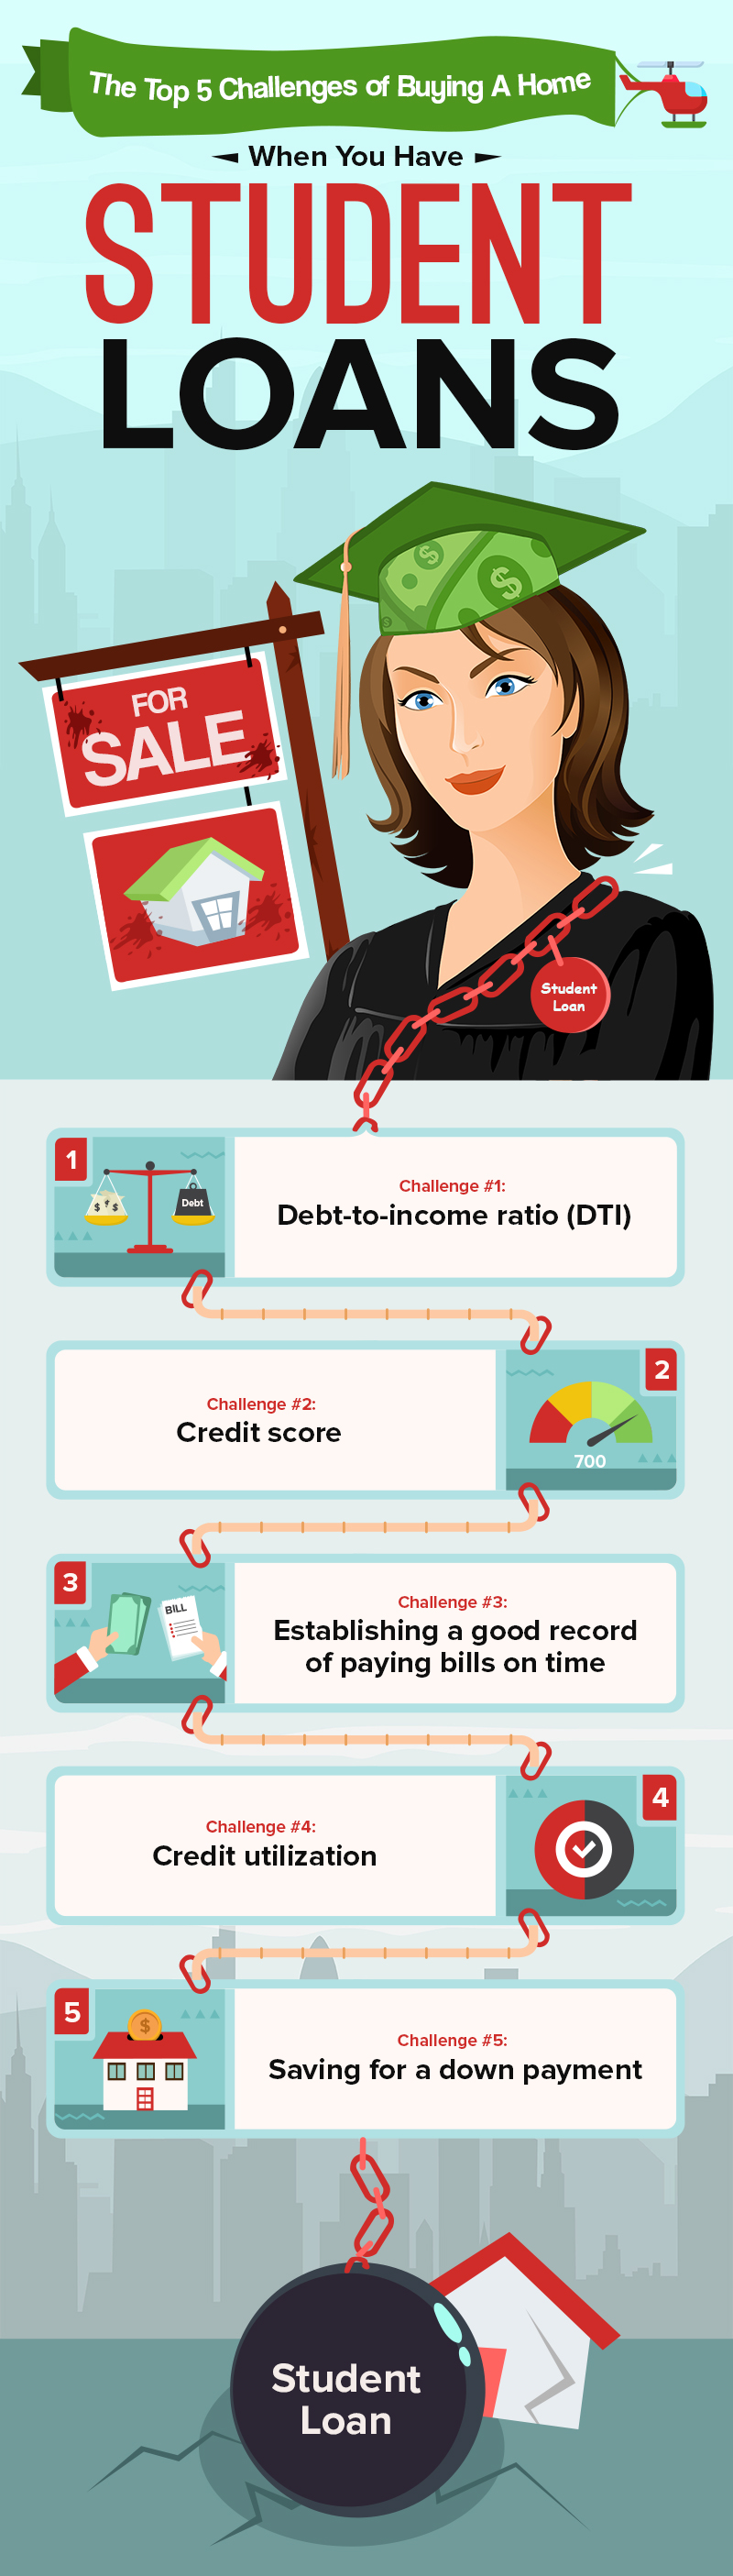 The 5 Biggest Challenges of Buying A Home When You Have Student Loans